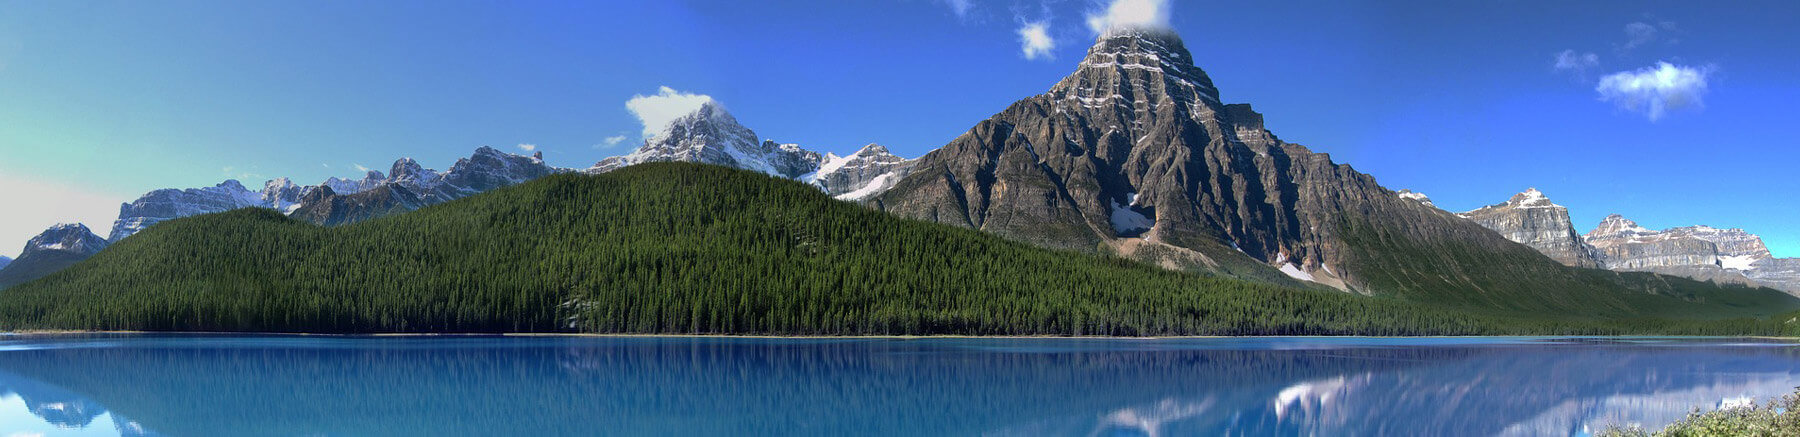 Blick auf den Mount Chephren, im Mistaya River Valley im Banff Nationalpark in Kanada.